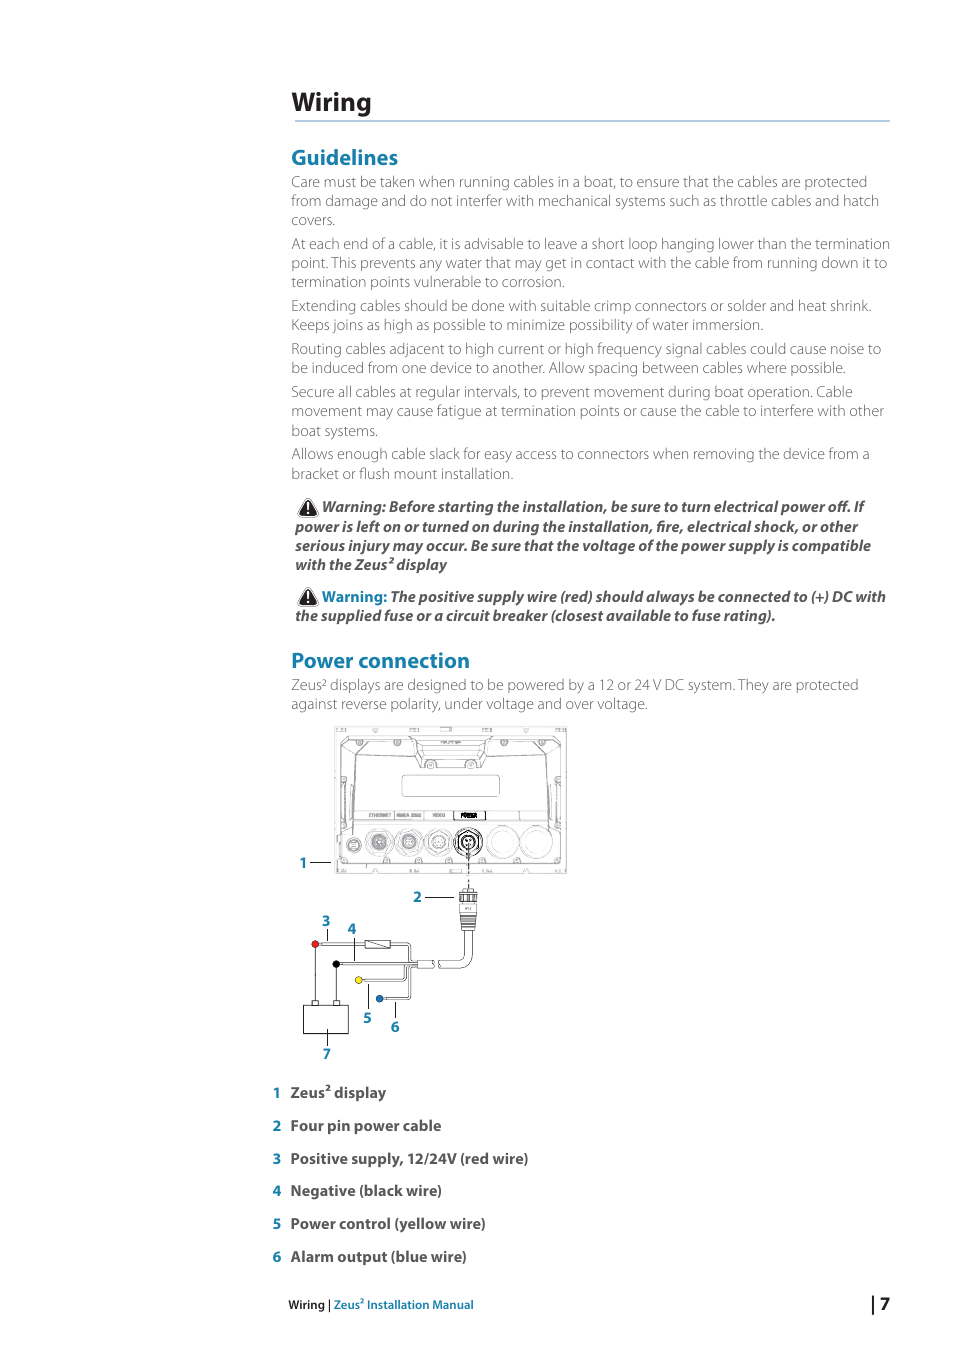 Wiring Guidelines Power Connection Bg Zeus2 12 User Manual Reverse Polarity Page 13 50